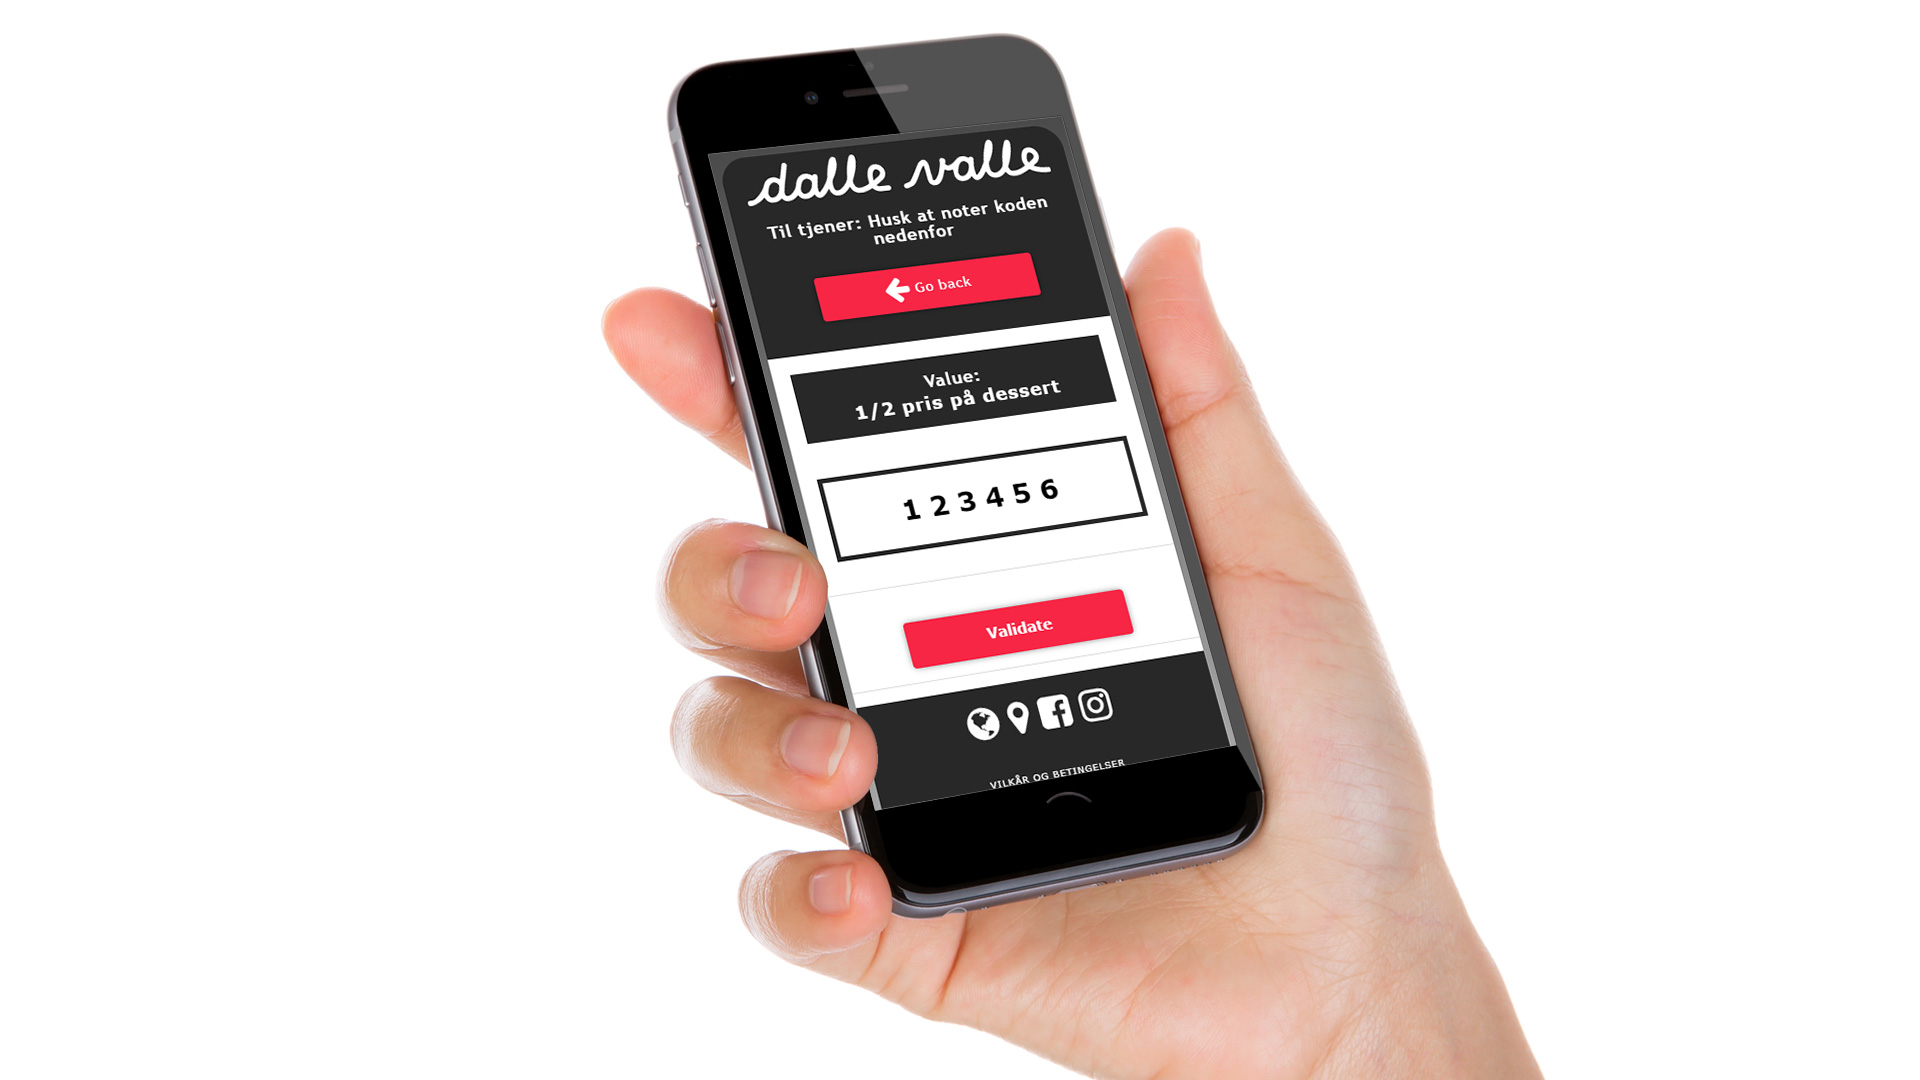 dalle valle app use case image